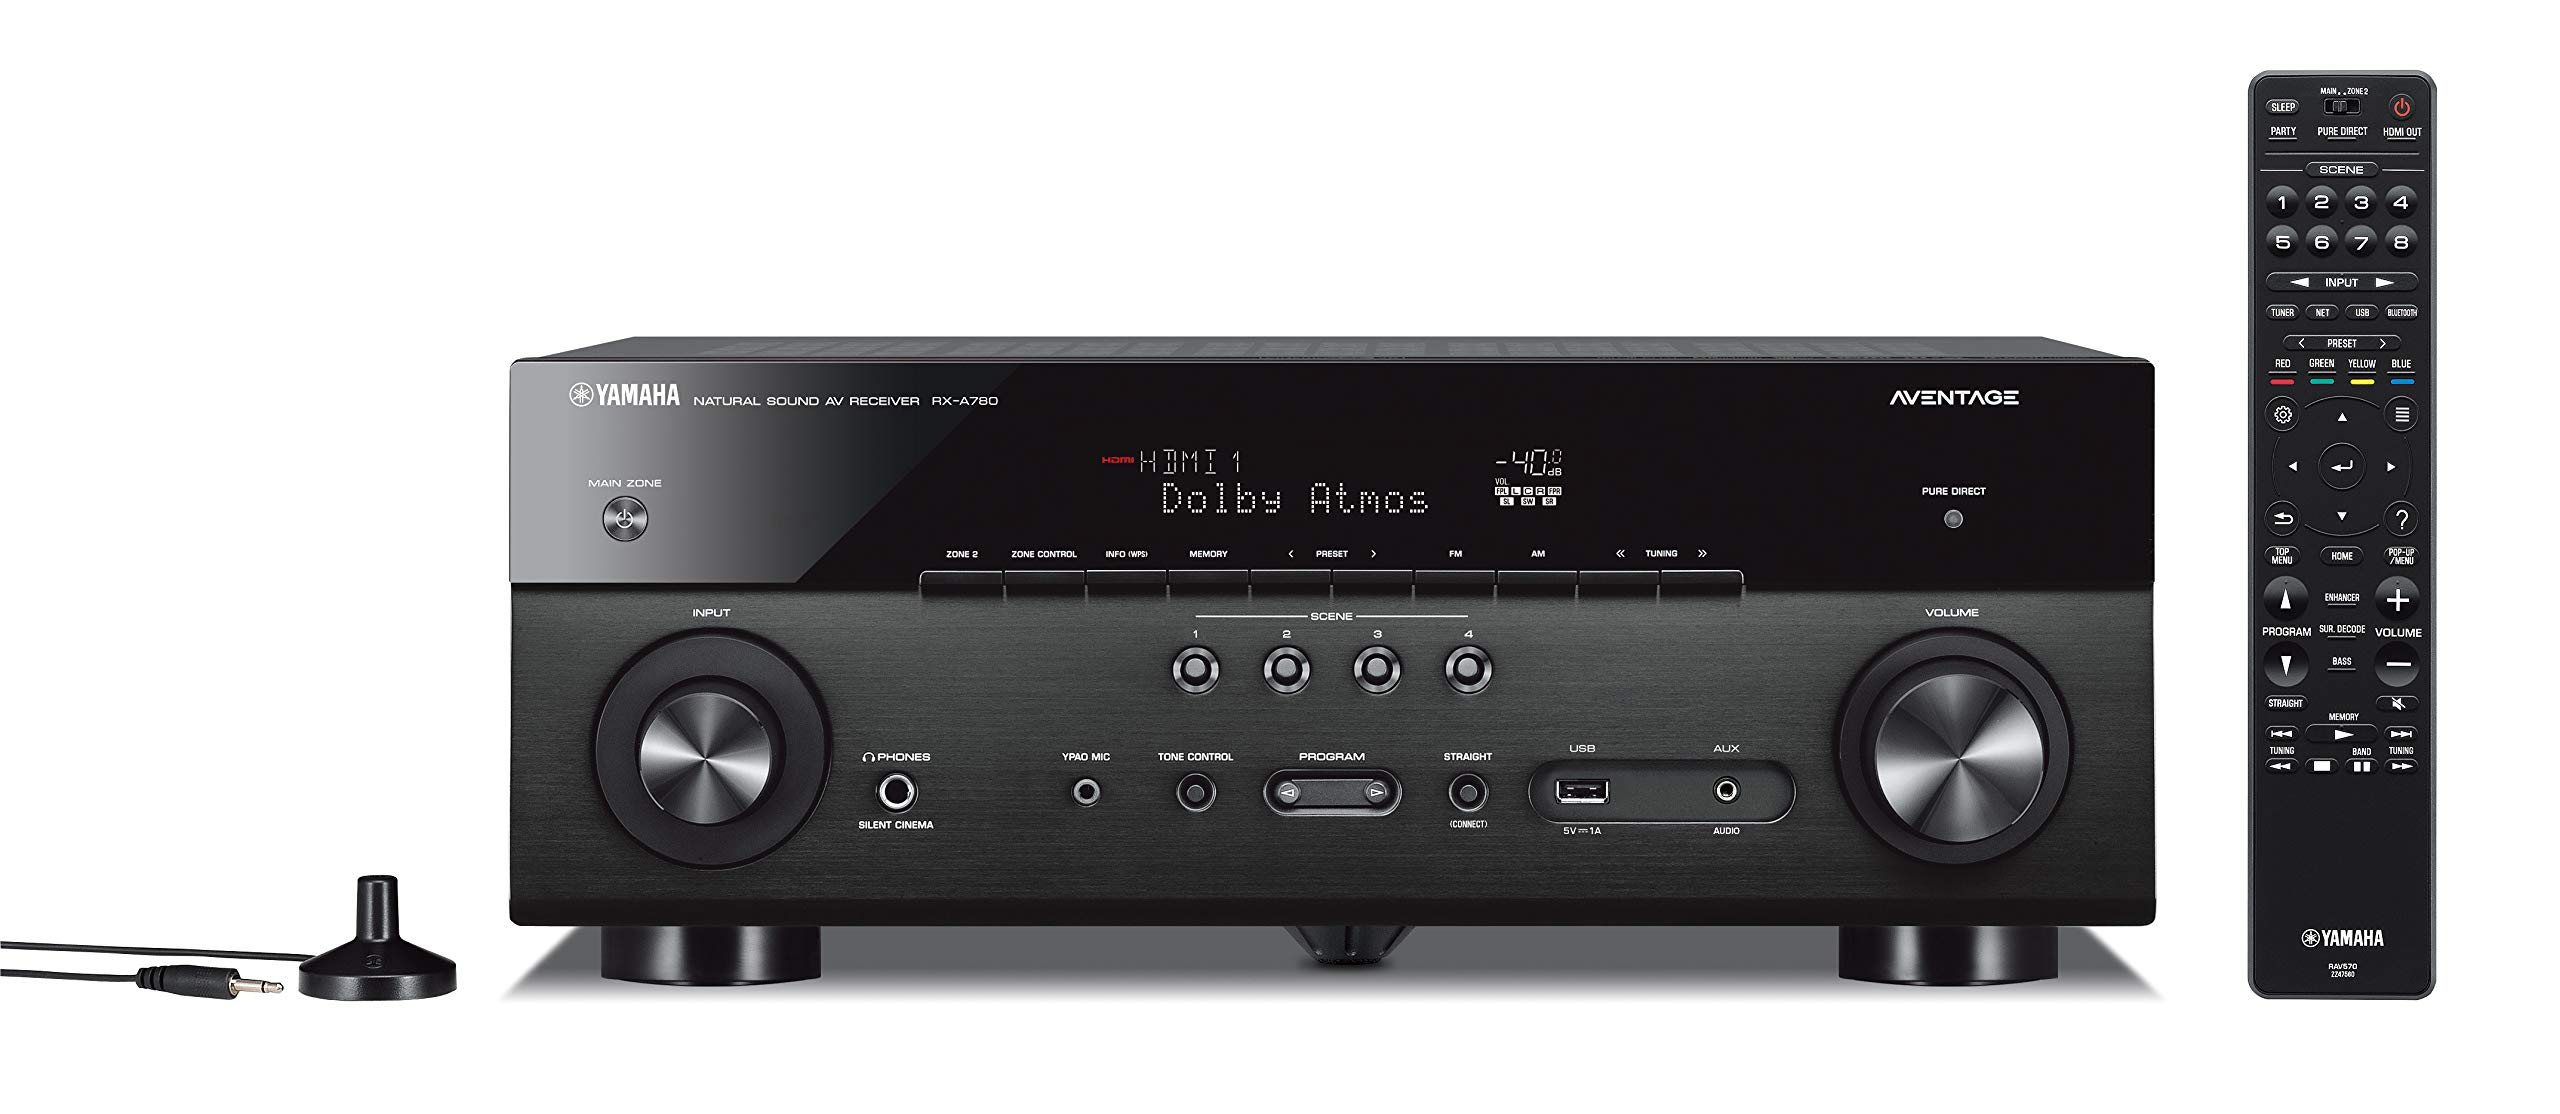 Yamaha RX-A780 AVENTAGE 7.2-Channel AV Receiver with MusicCast - Black by Yamaha Audio